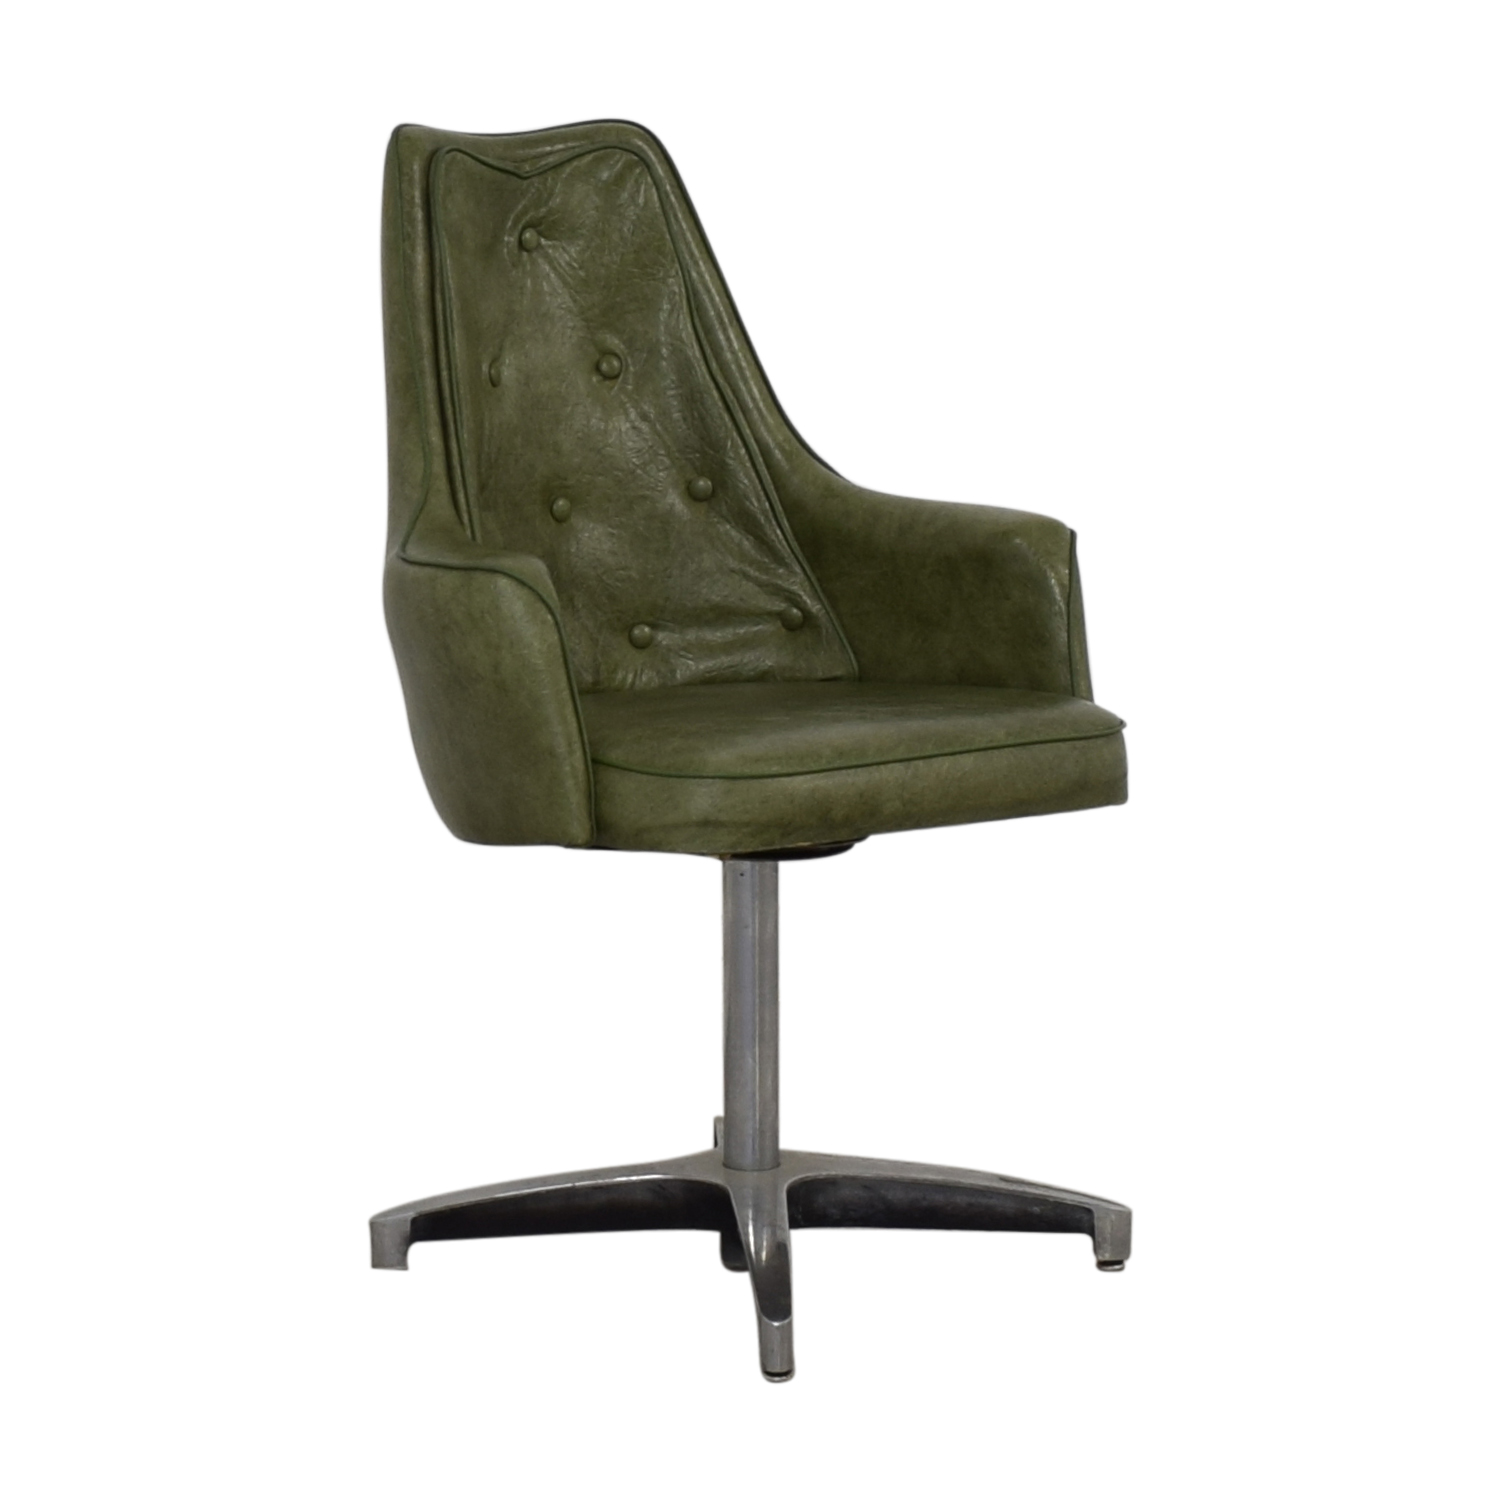 shop Spartan Chrome Furniture Green Leather Chair Spartan Chrome Furniture Chairs